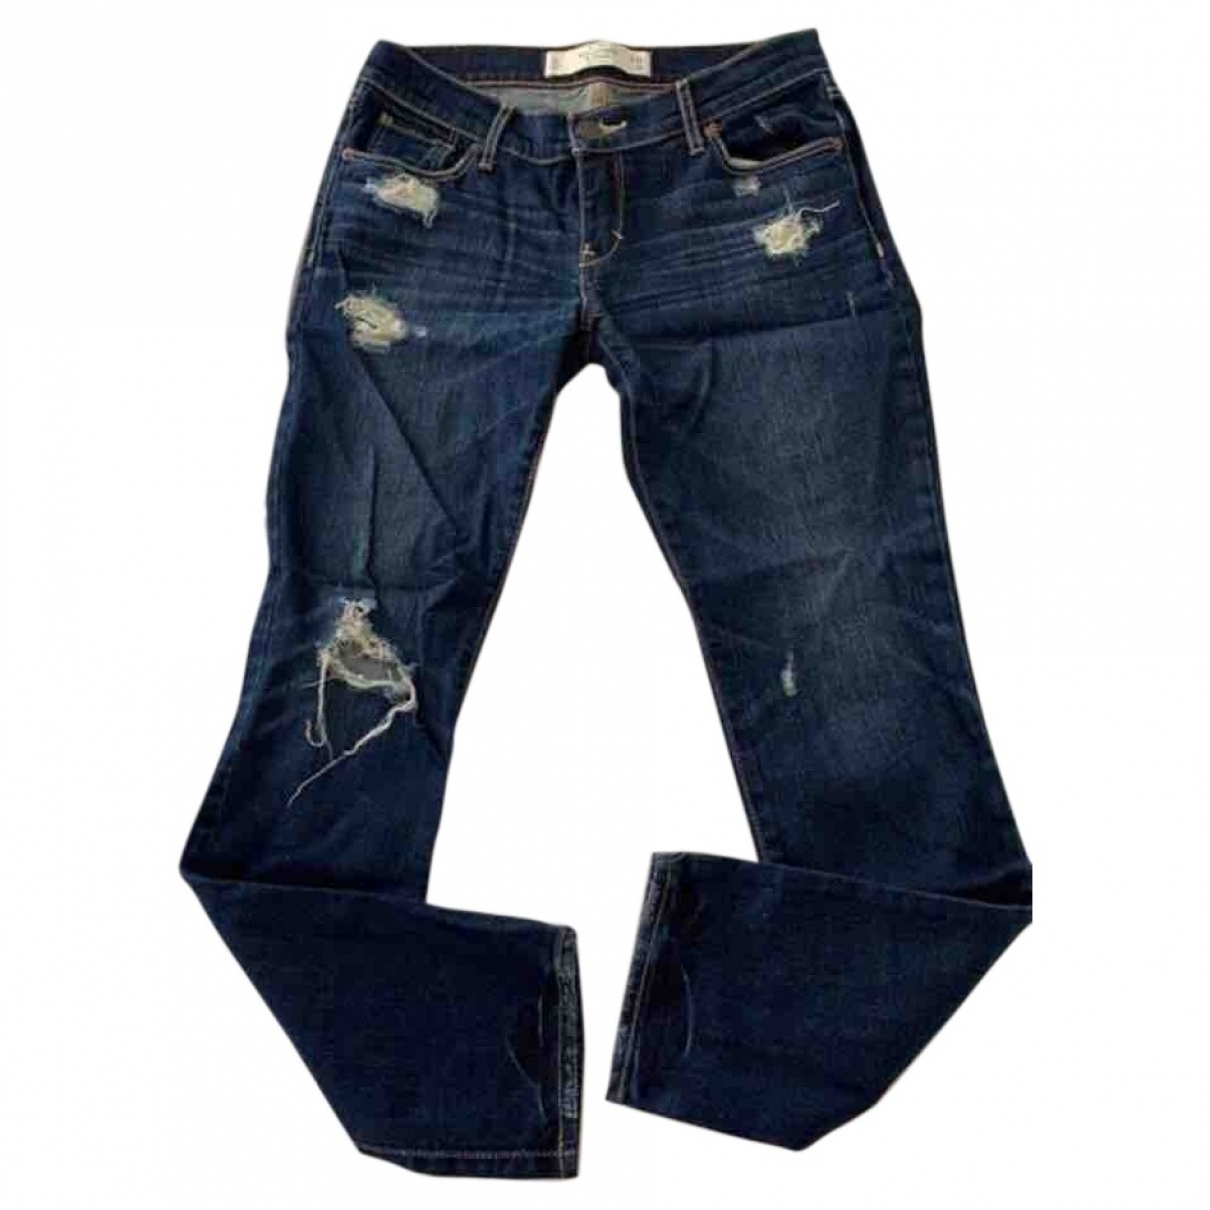 Abercrombie & Fitch \N Blue Cotton - elasthane Jeans for Women 26 US